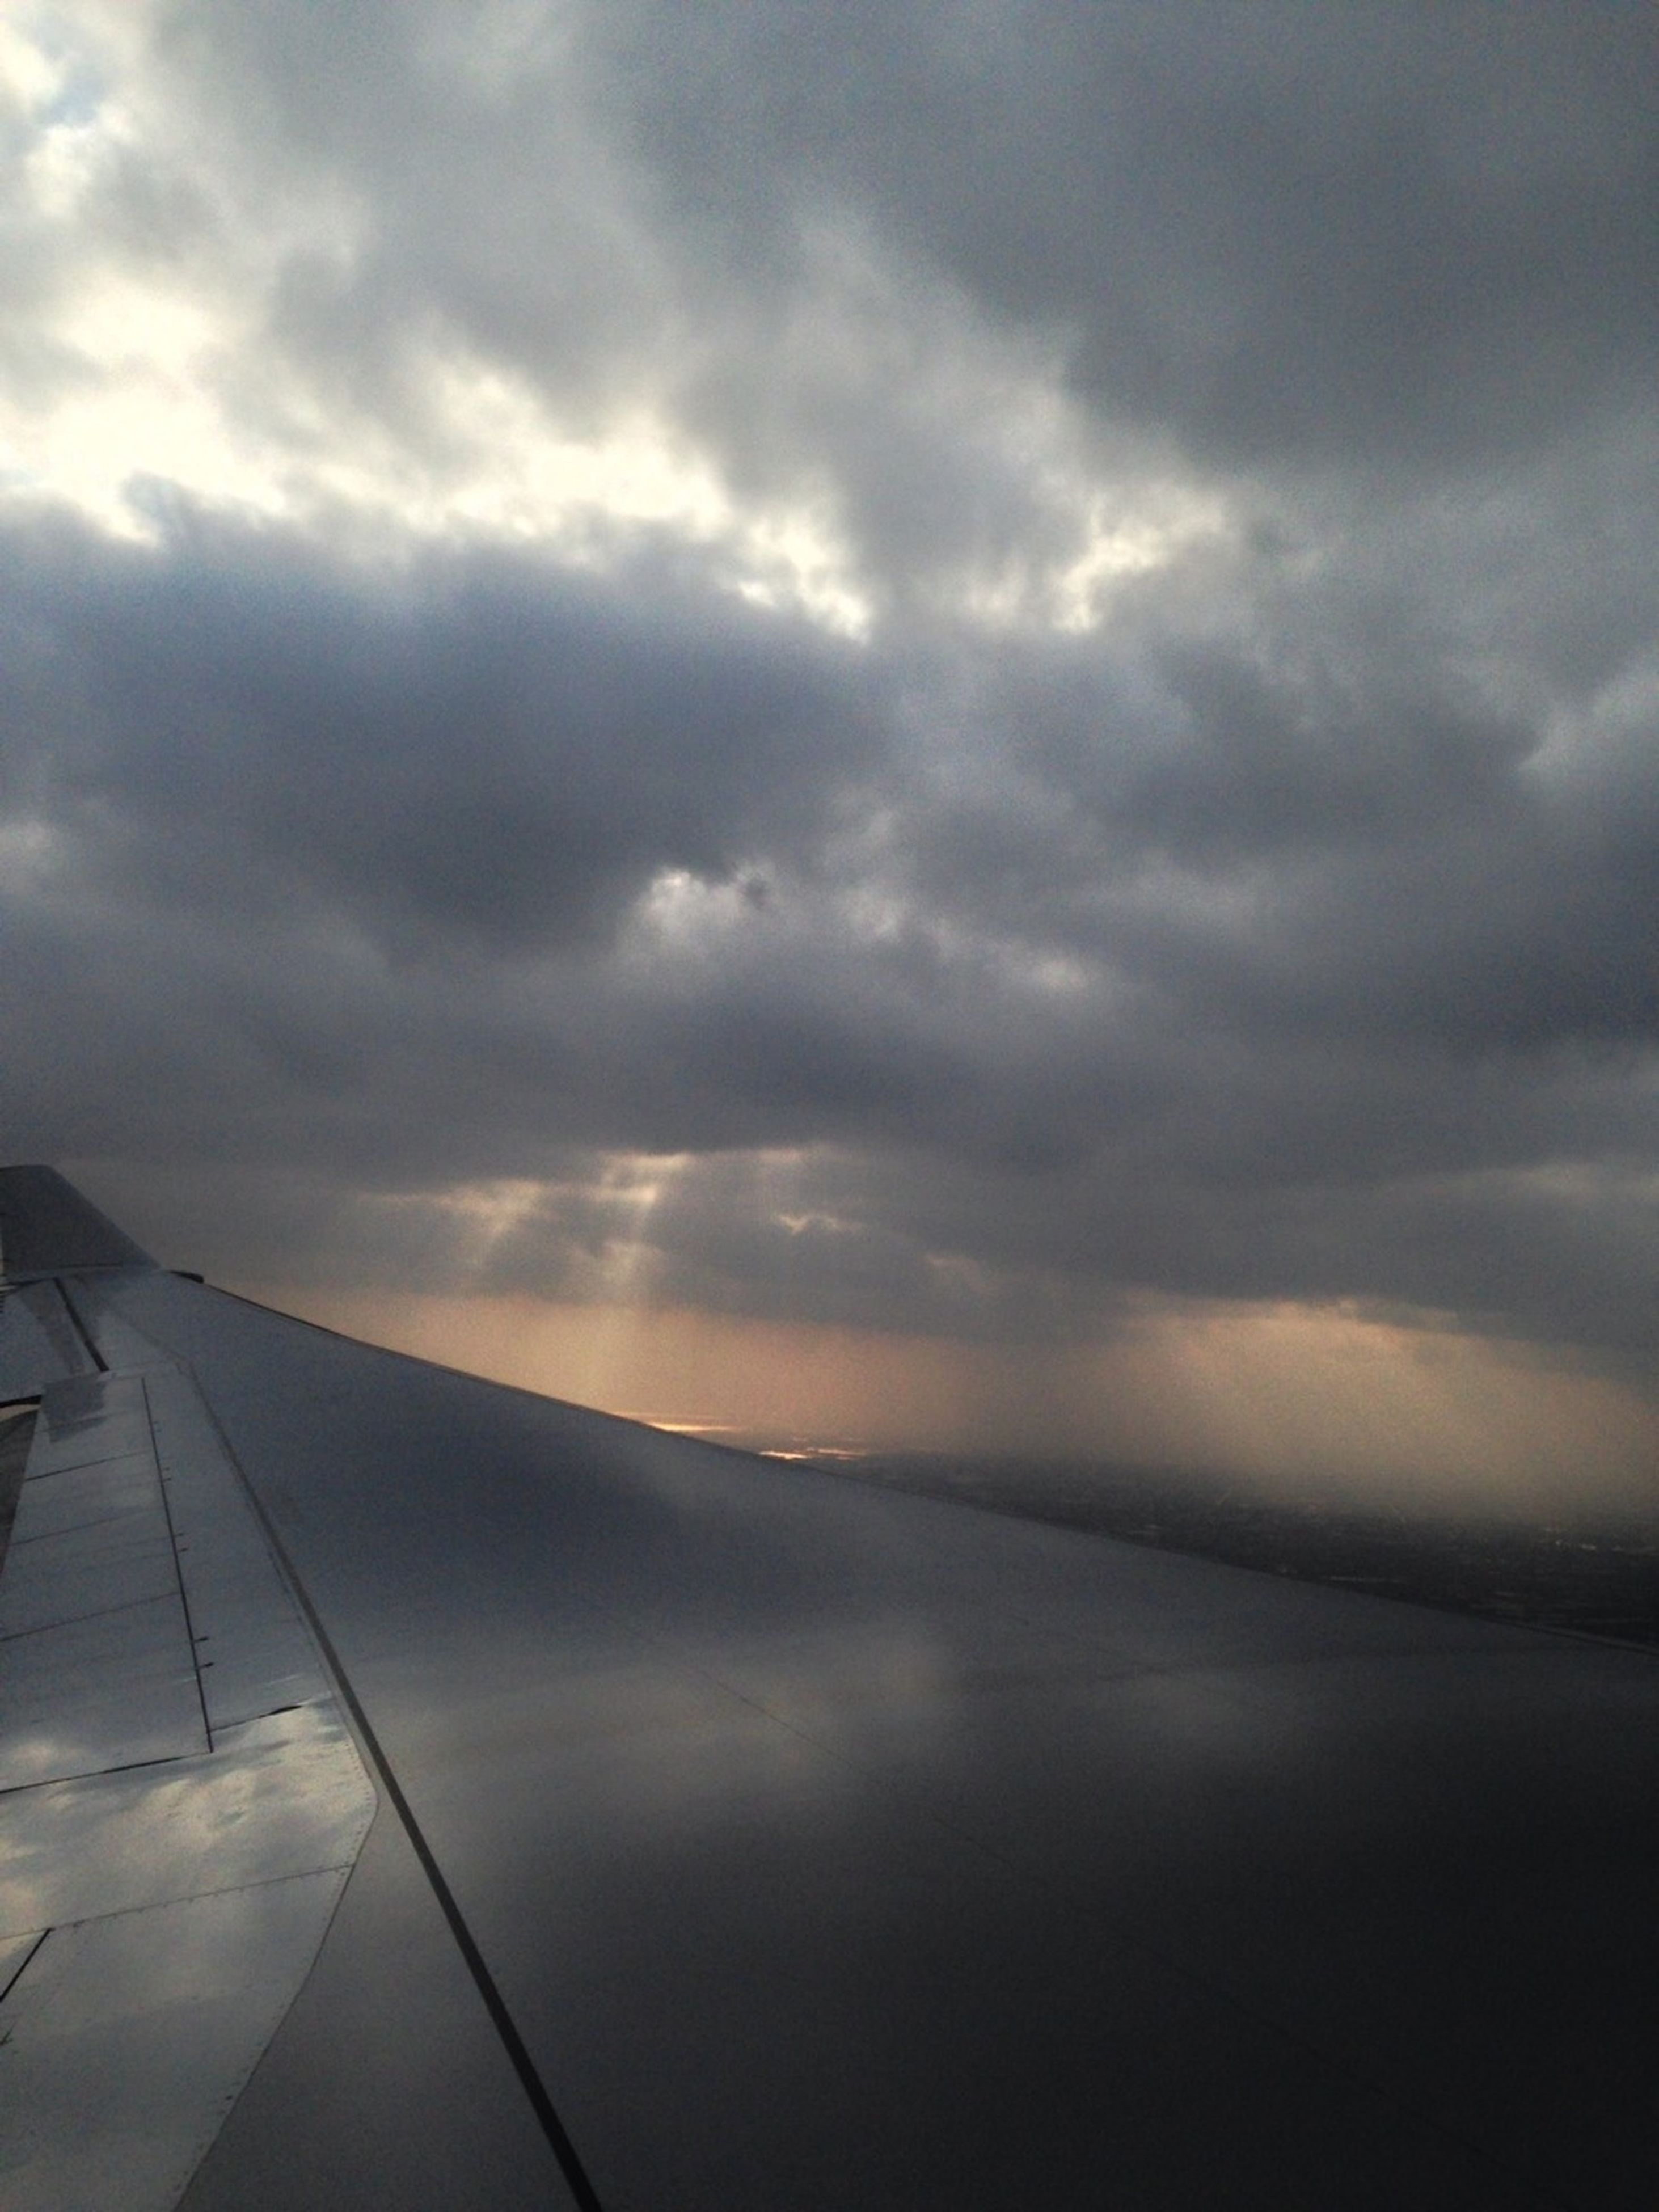 sky, cloud - sky, cloudy, weather, scenics, beauty in nature, tranquility, cloud, tranquil scene, nature, cloudscape, transportation, overcast, aerial view, outdoors, airplane, no people, day, sea, landscape